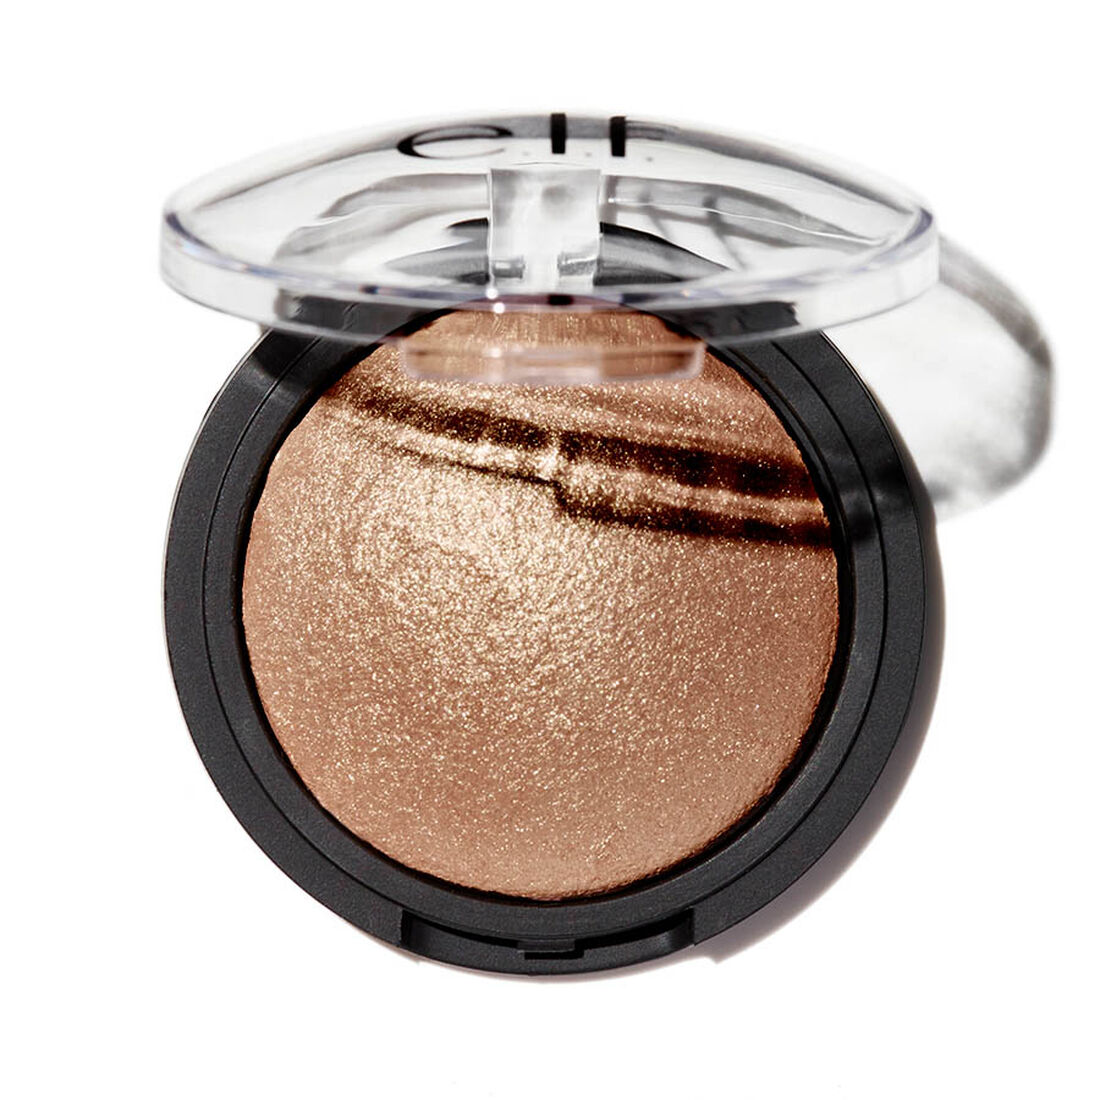 e.l.f. Cosmetics - Baked Bronzer